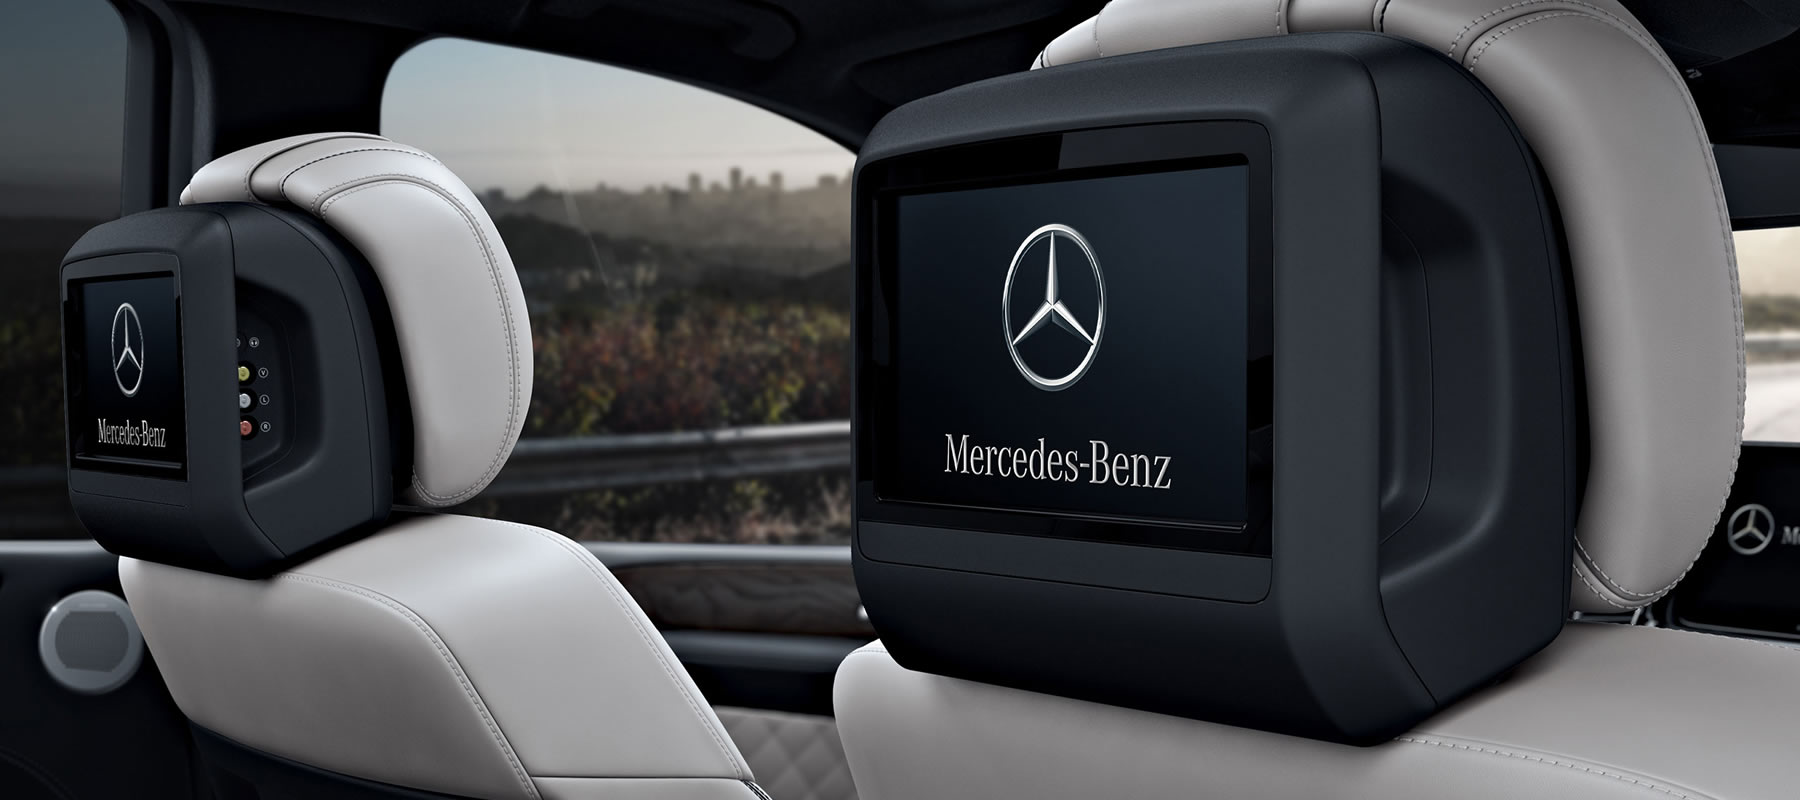 Genuine mercedes benz parts accessories at mercedes benz for Mercedes benz parts and accessories online